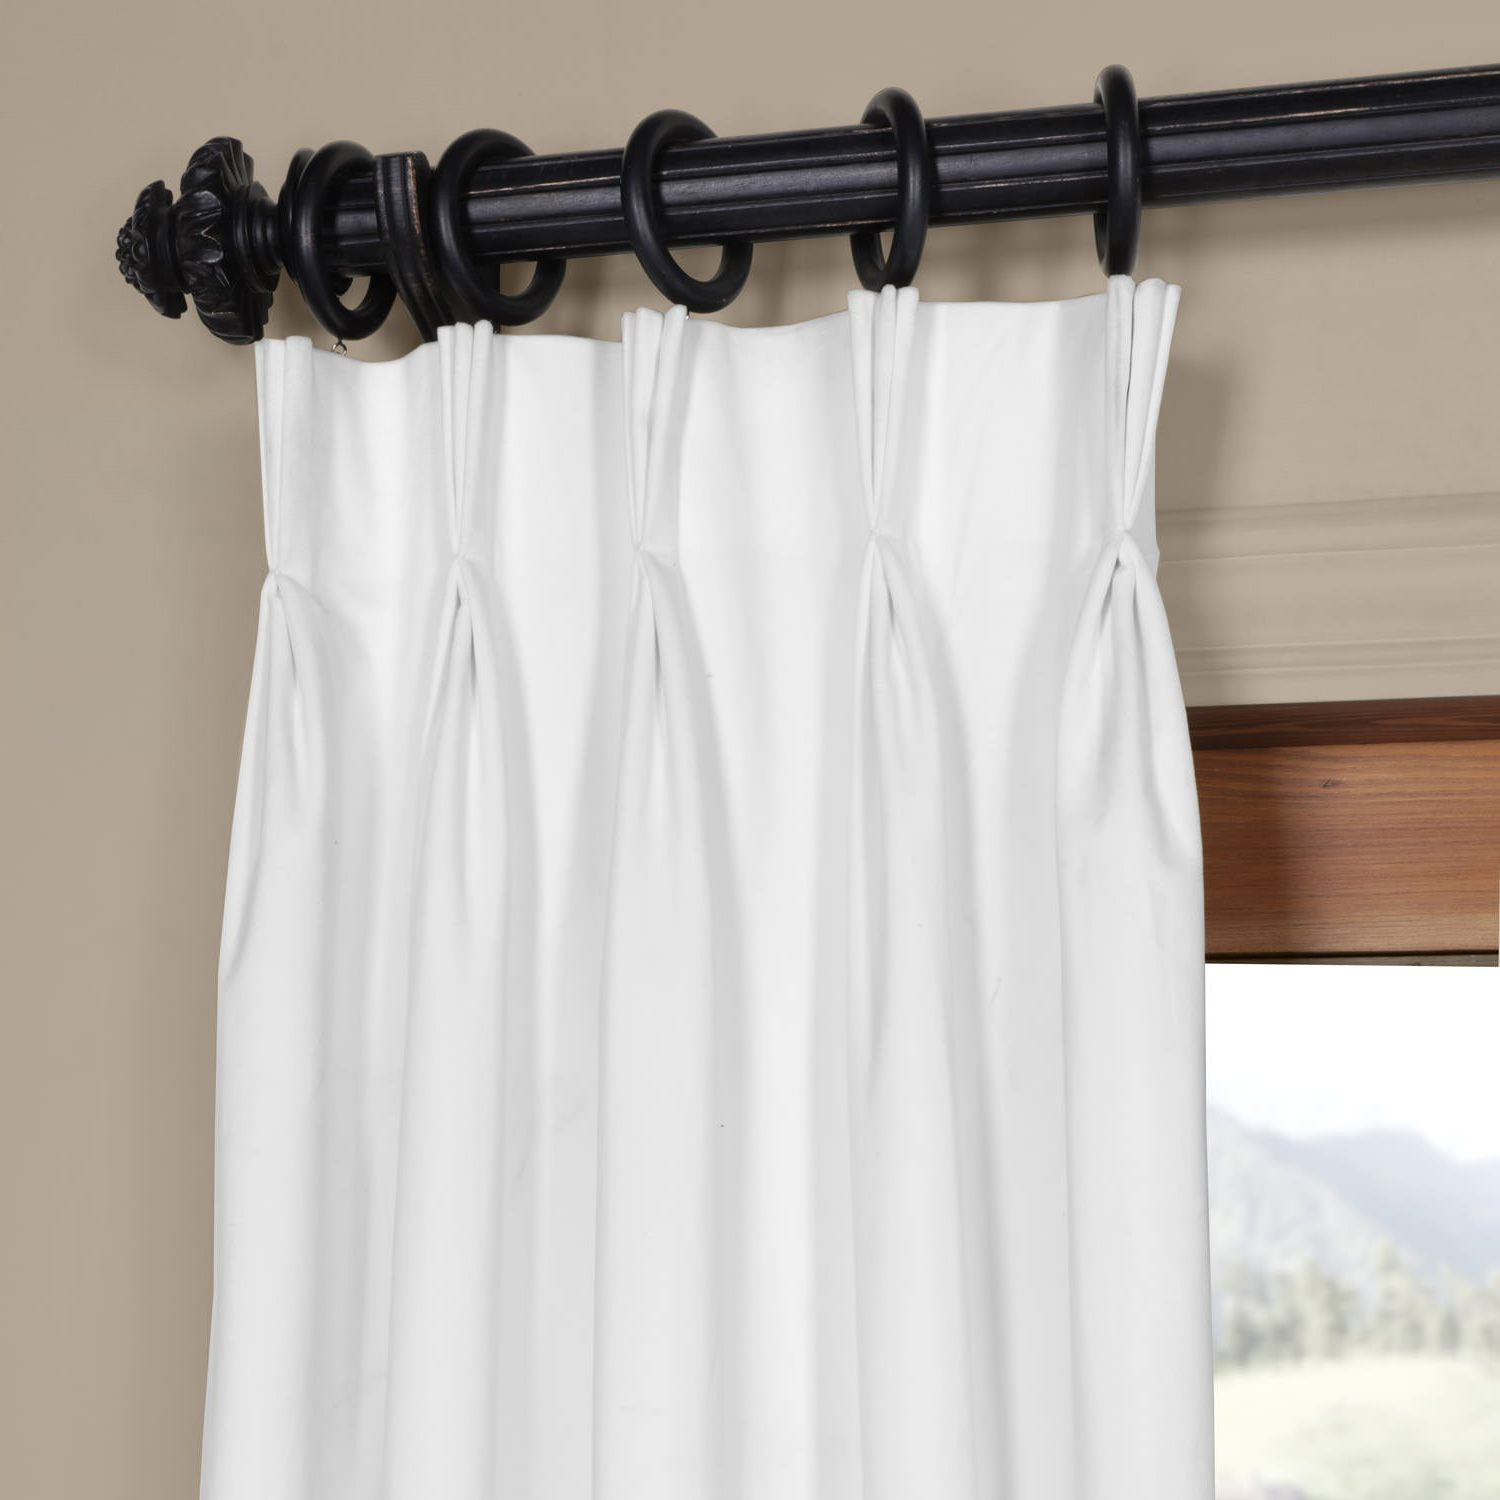 """Vpch 110602 108 Fp Signature Pleated Blackout Velvet Curtain, 25 X 108"""", Off White Pertaining To Most Recently Released Signature Pinch Pleated Blackout Solid Velvet Curtain Panels (View 9 of 20)"""